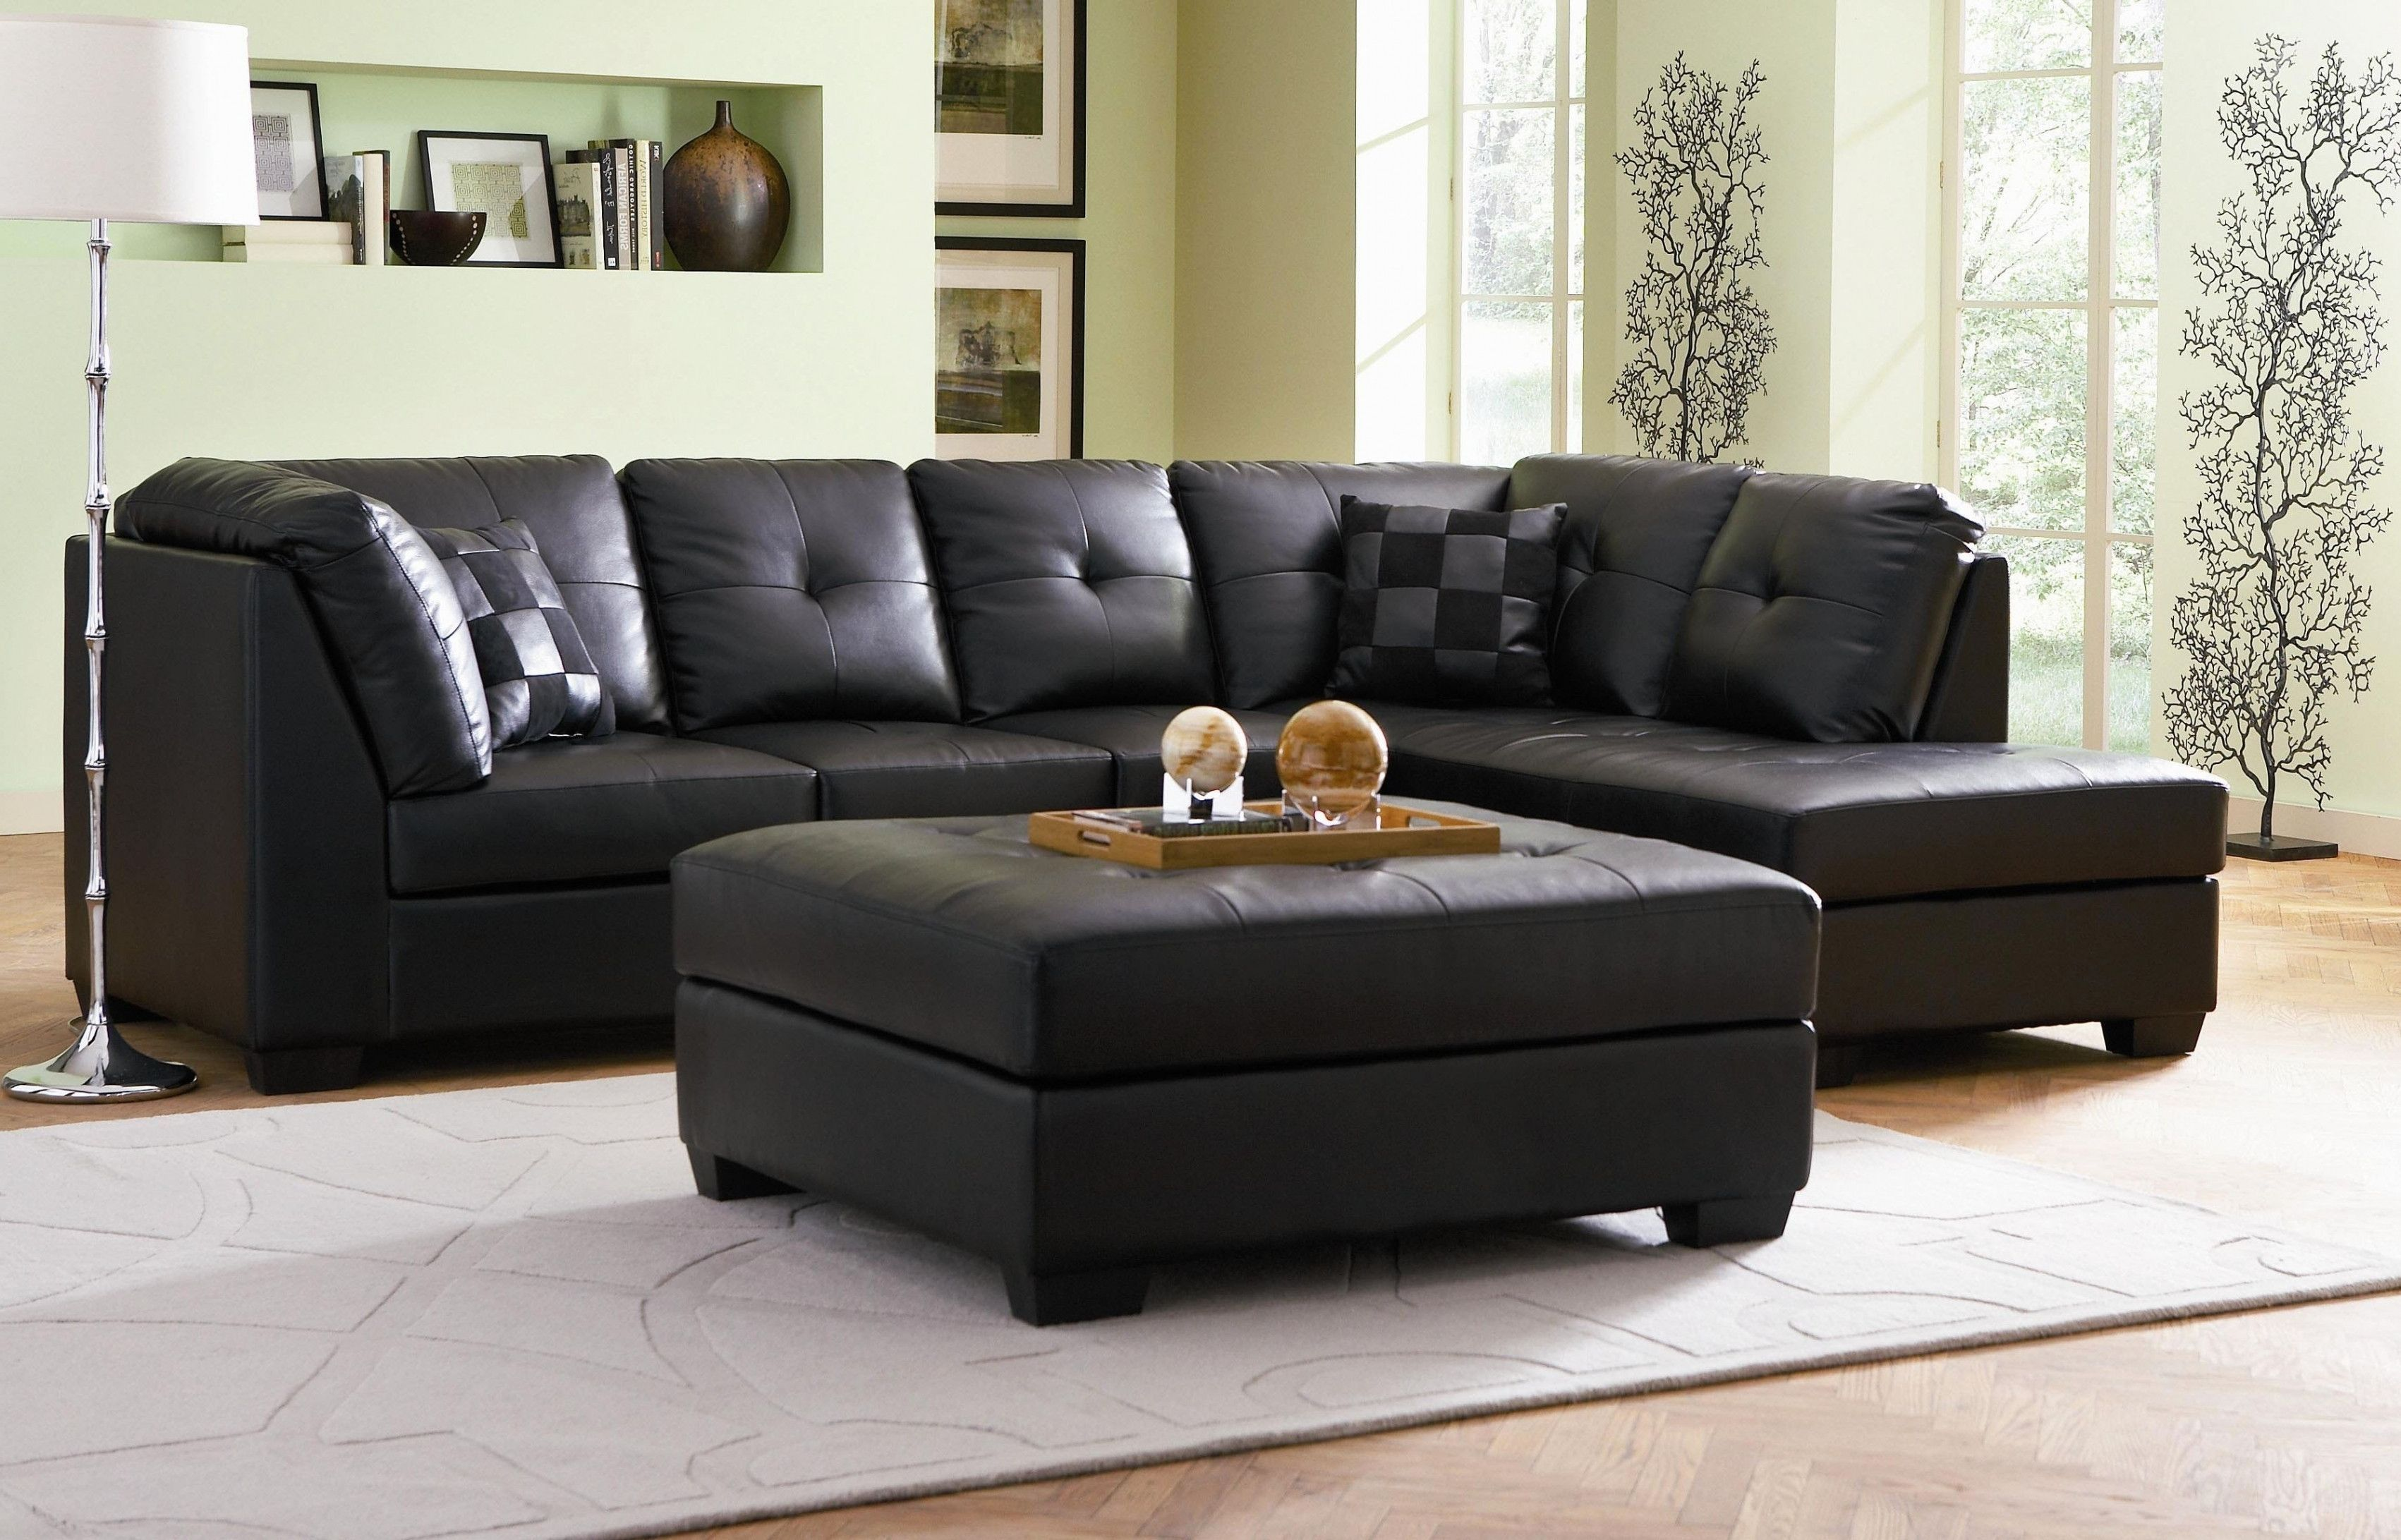 Choosing Sectional Sofa Under 200 Generally Is A Challenge There